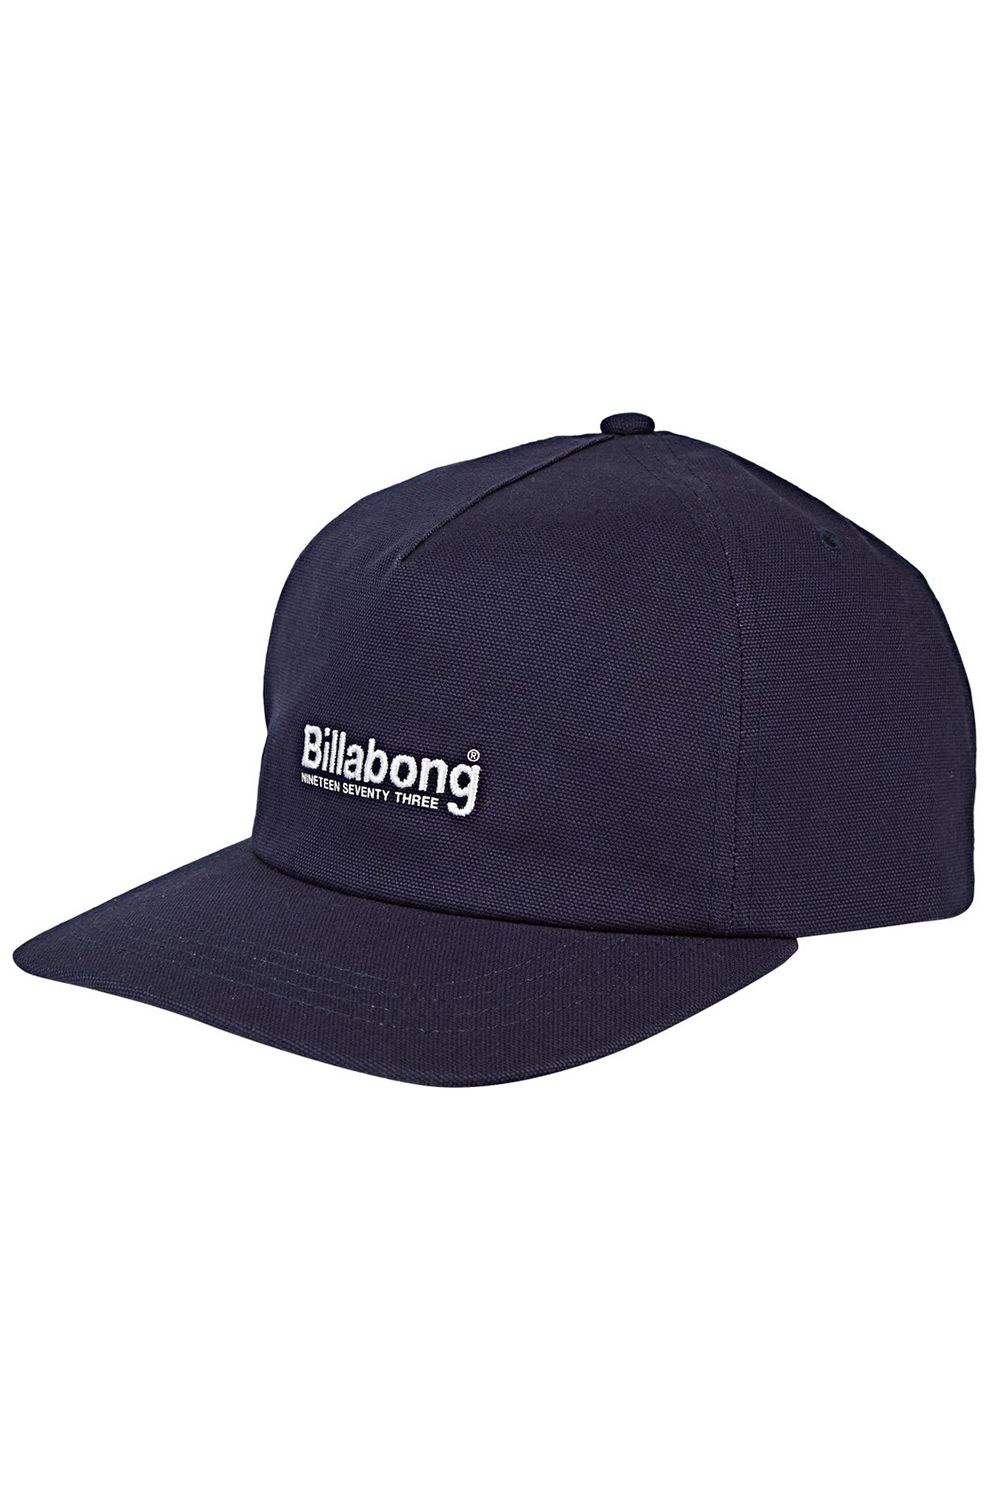 Billabong Cap   WALLRIDE Navy